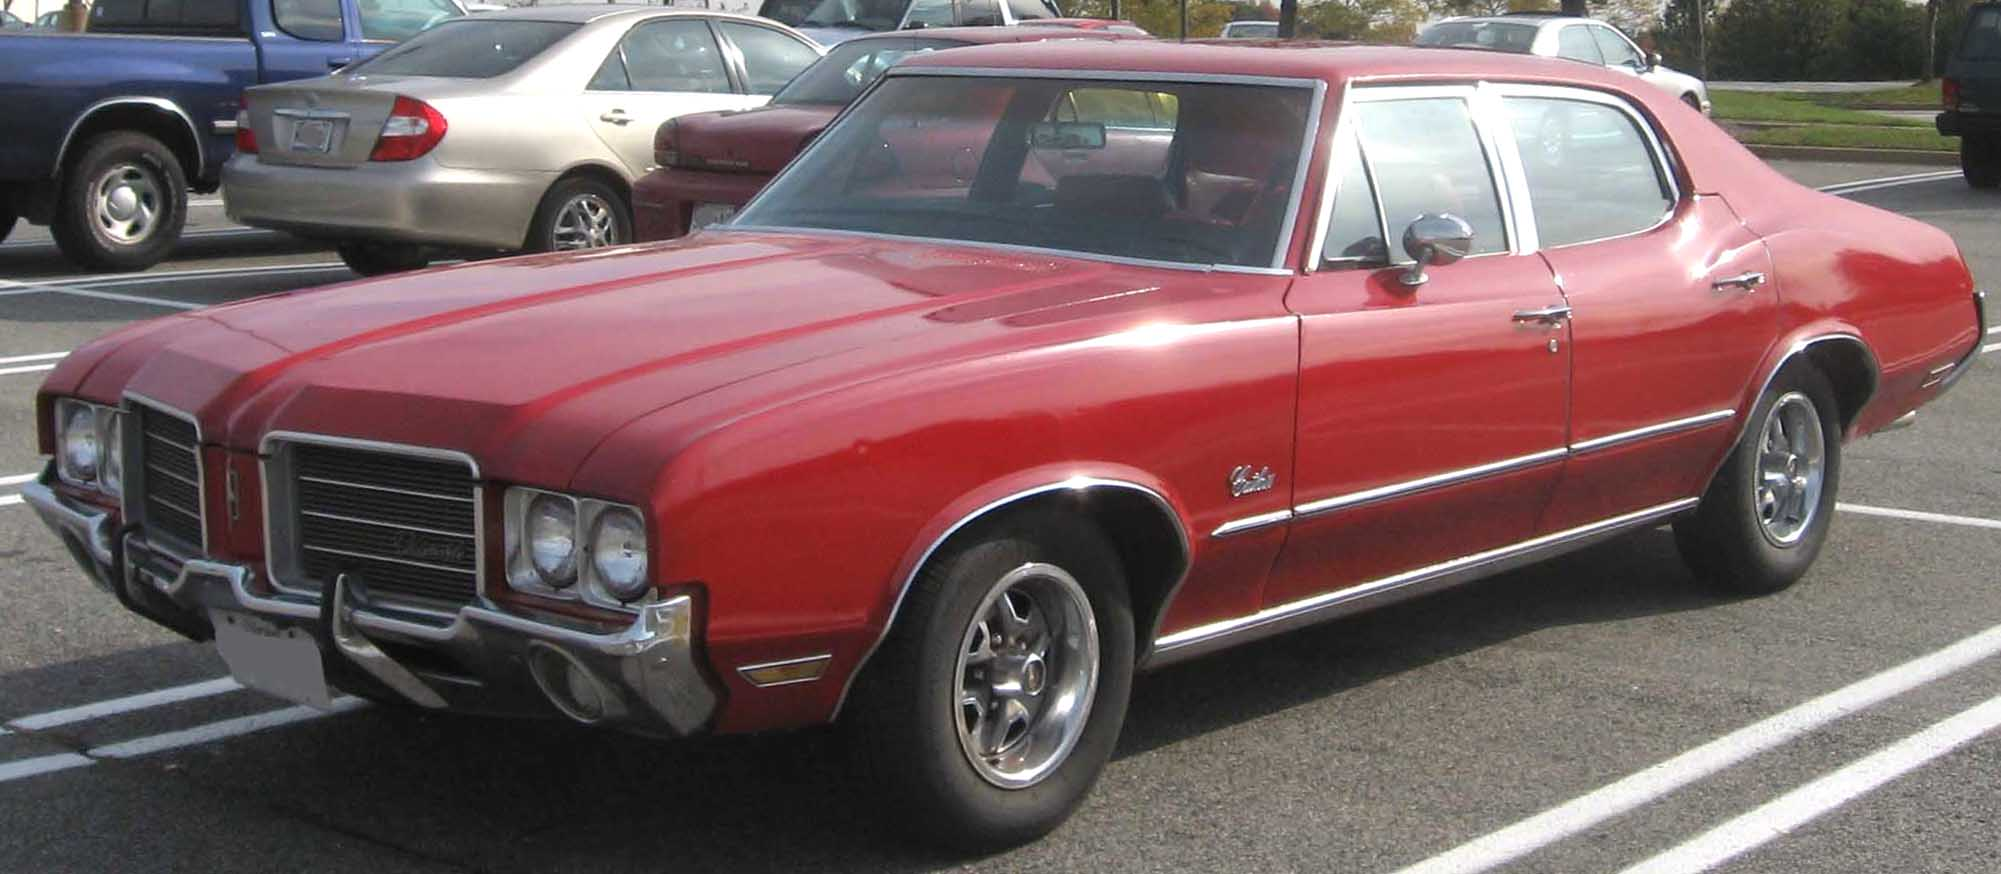 Oldsmobile Cutlass #3